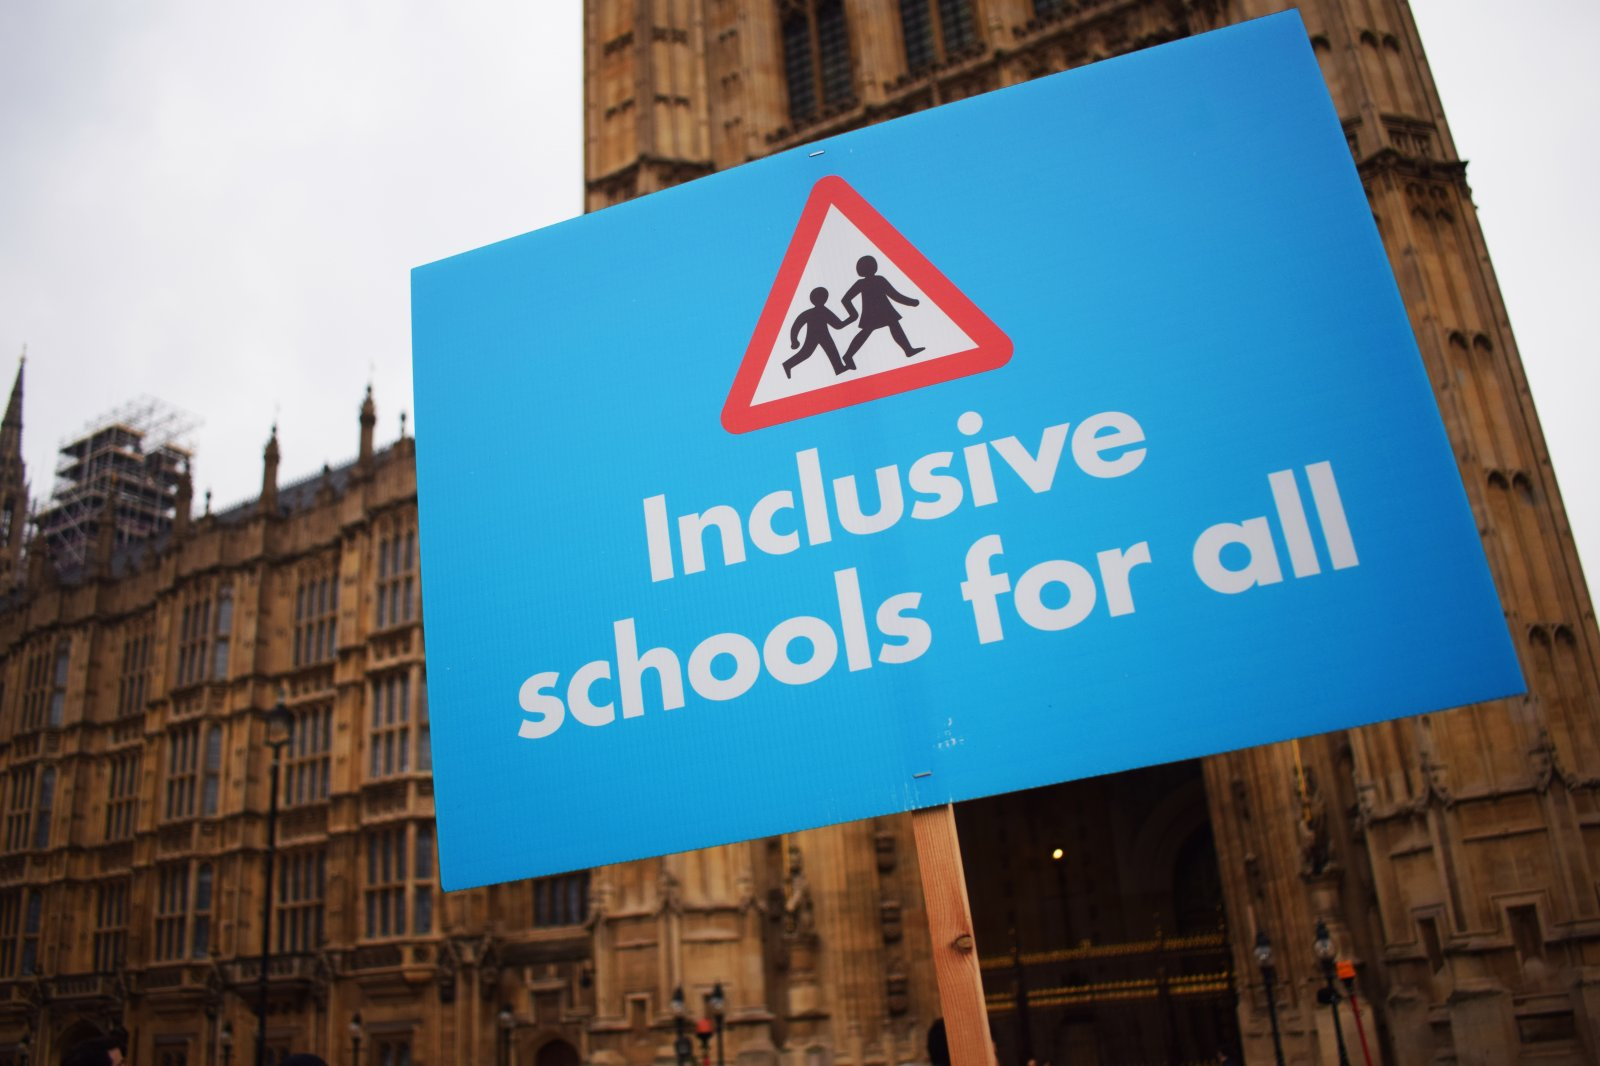 Inclusive schools for all protest